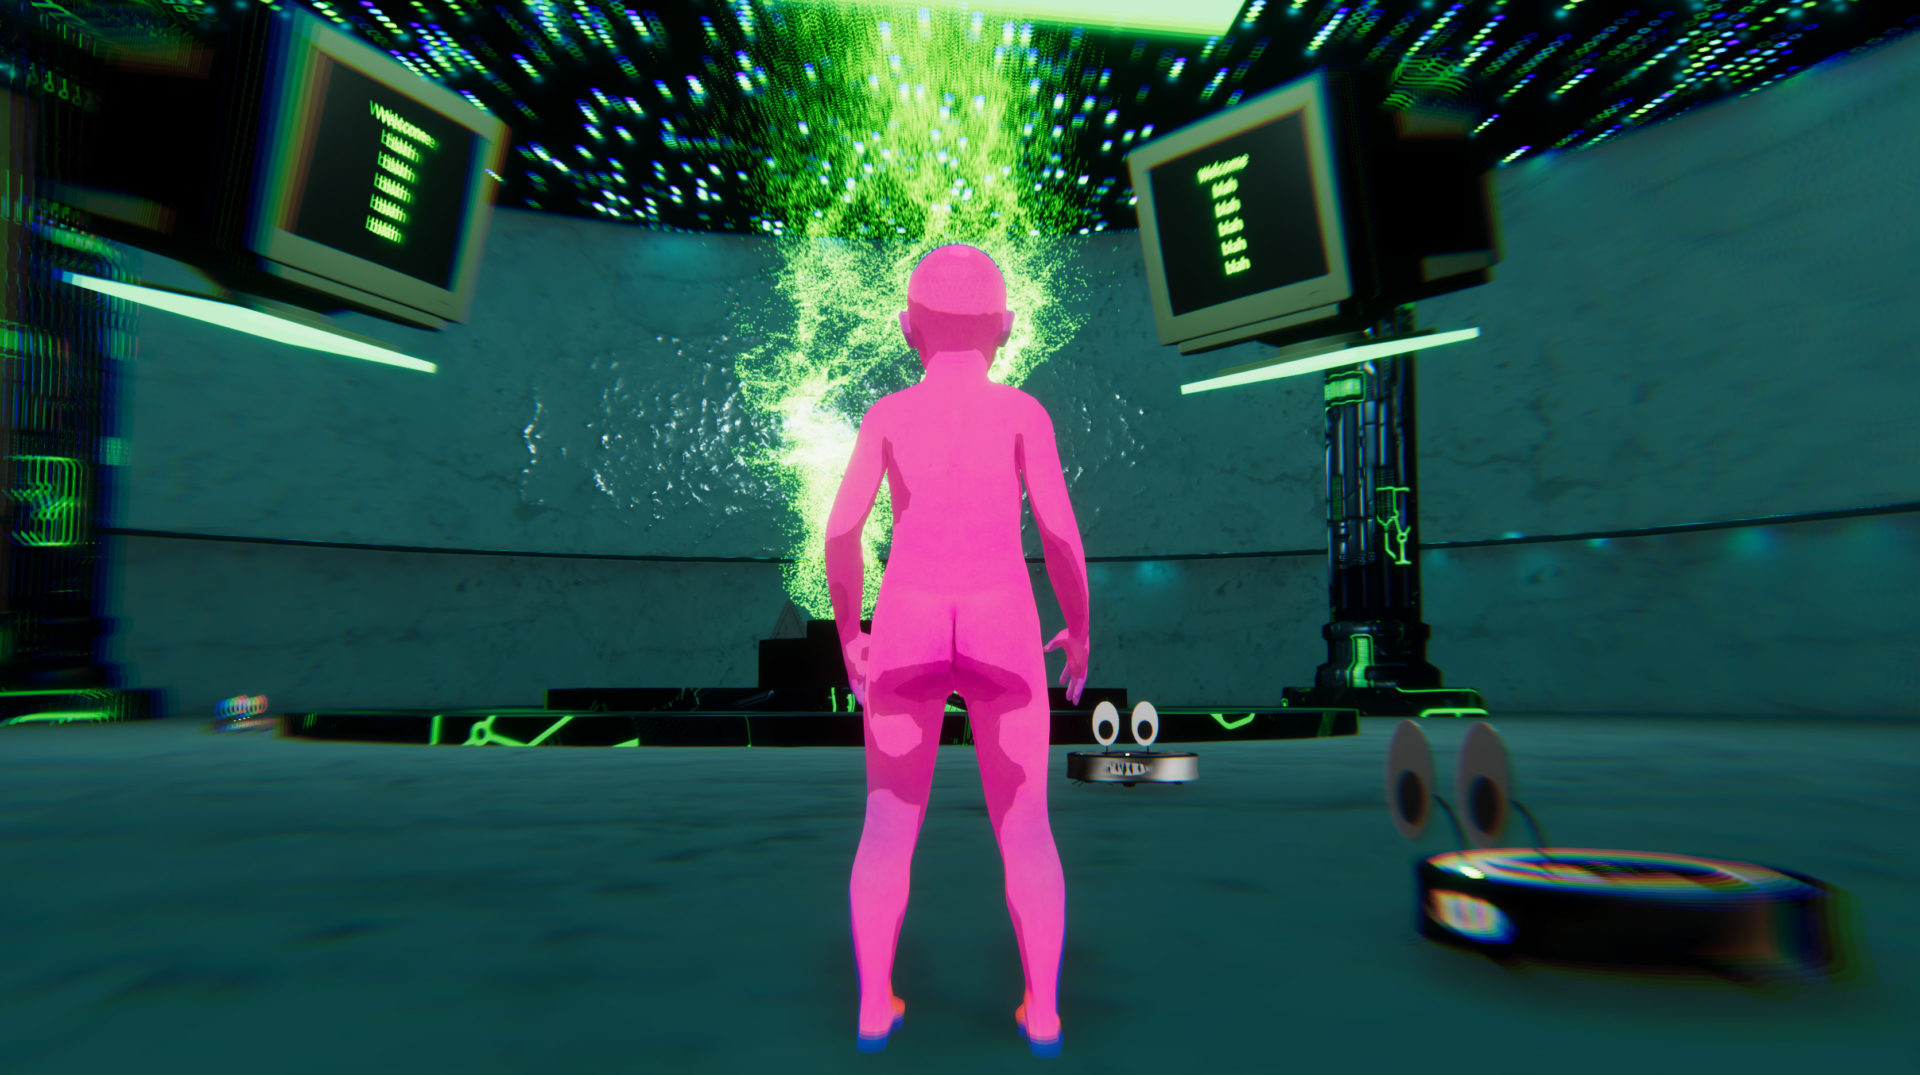 The nude, hot-pink, humanoid figure stands with its back to the frame in a teal room with an open, black ceiling filled with stars and neon green glitch marks. Two computer or TV monitors are in the frame with black screens and neon green words, which are hard to make out. Two small robot vacuums with eyes and mouths filled with teeth are placed on the ground.